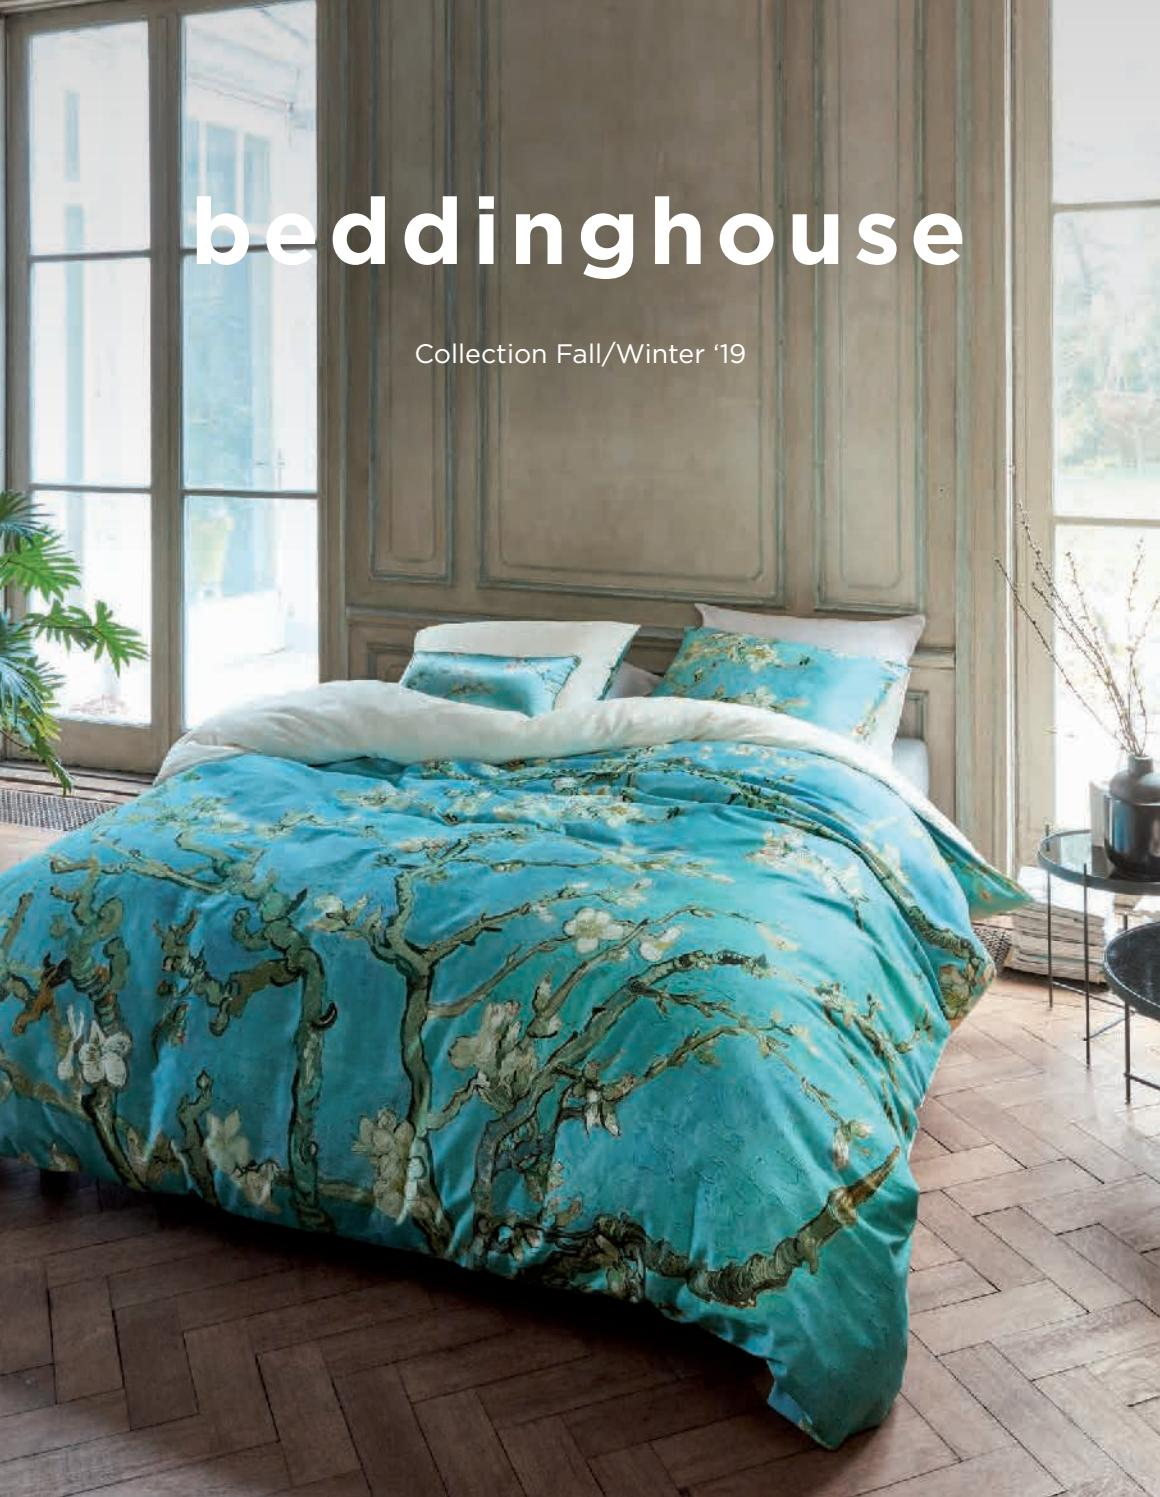 Interieur Passion Home Textiles beddinghouse collectionbook fall/winter '19 (dutch/english